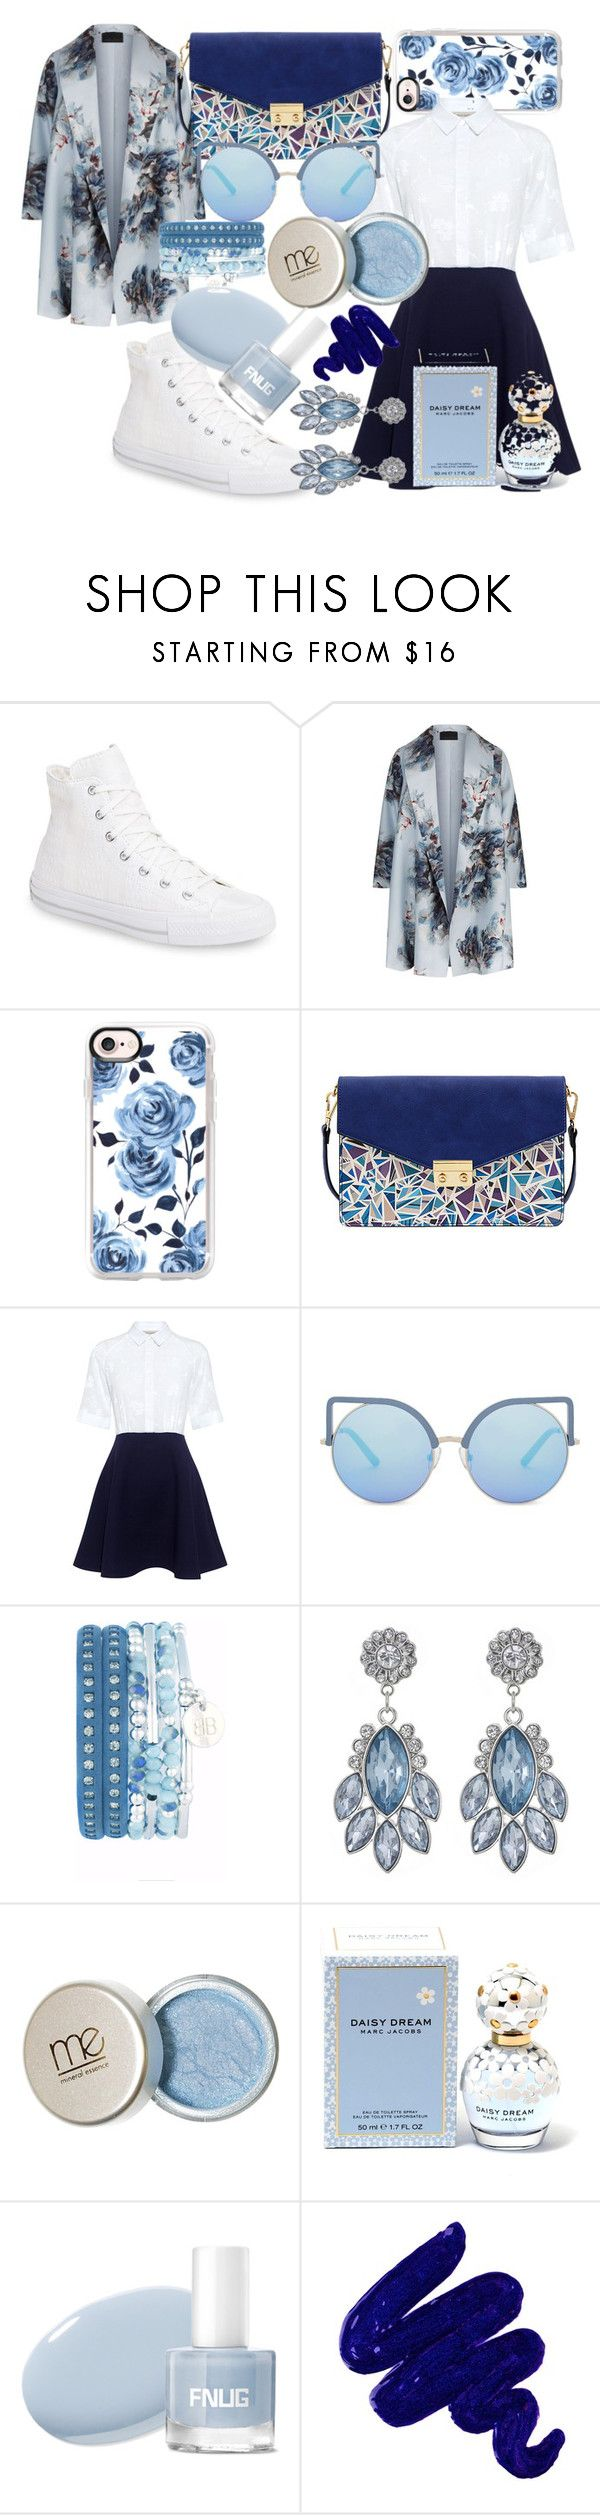 """navy sporty chic"" by crowem ❤ liked on Polyvore featuring Converse, Marina Rinaldi, Casetify, Mellow World, Paul & Joe Sister, Matthew Williamson, Marc Jacobs, Obsessive Compulsive Cosmetics and plus size clothing"